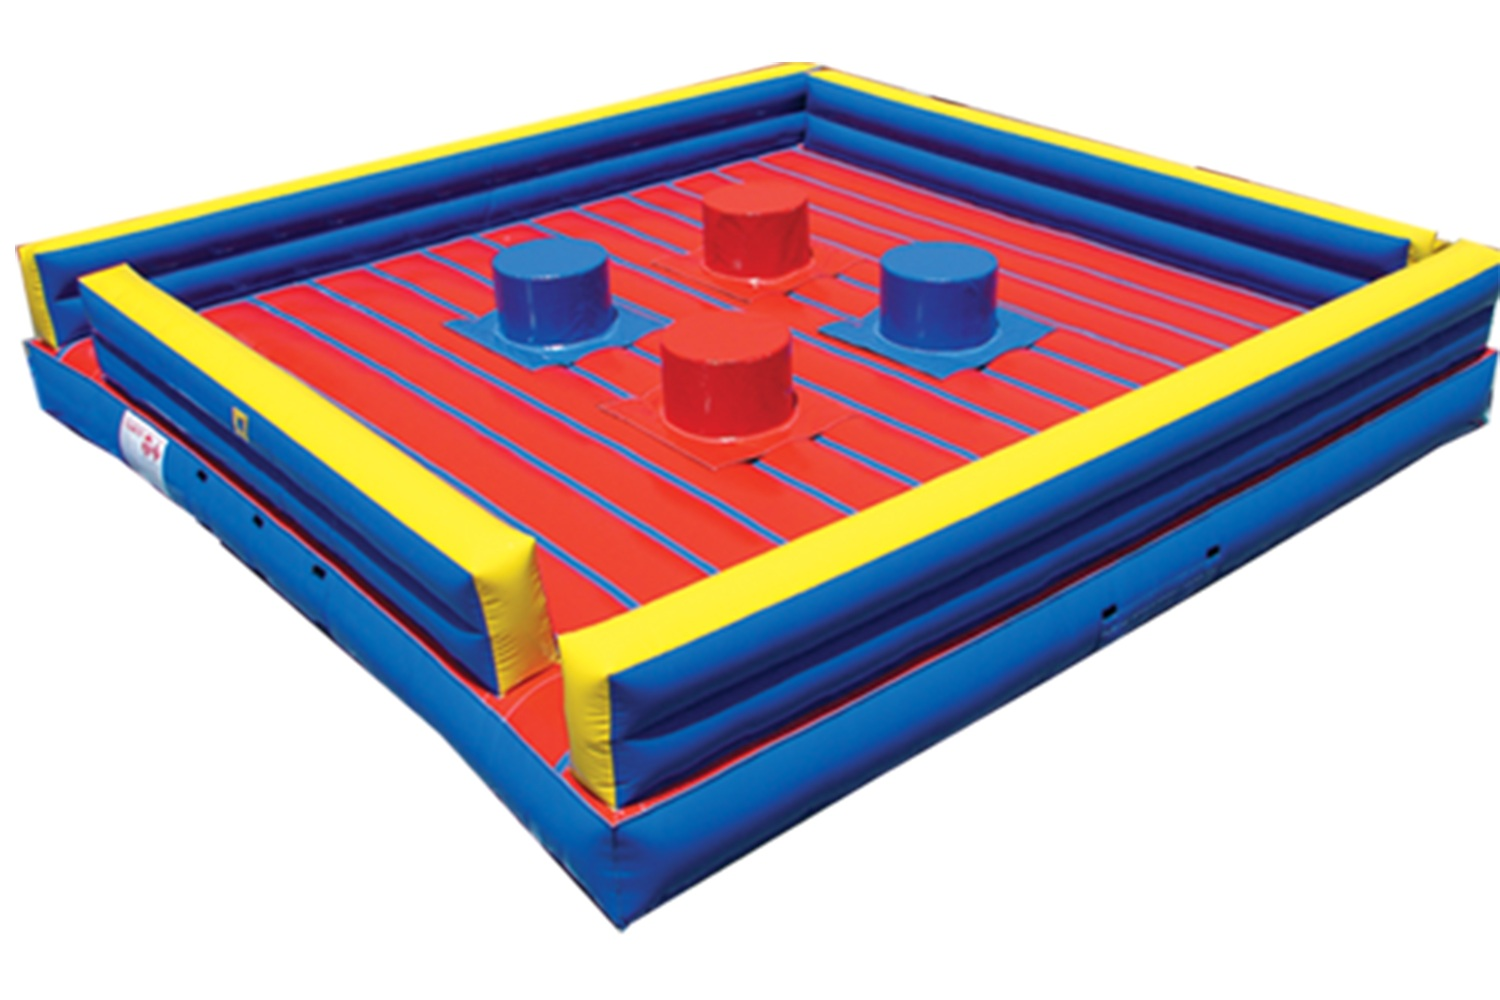 Gladiator Joust (4 Person) - $249.00 ALL DAY RENTAL